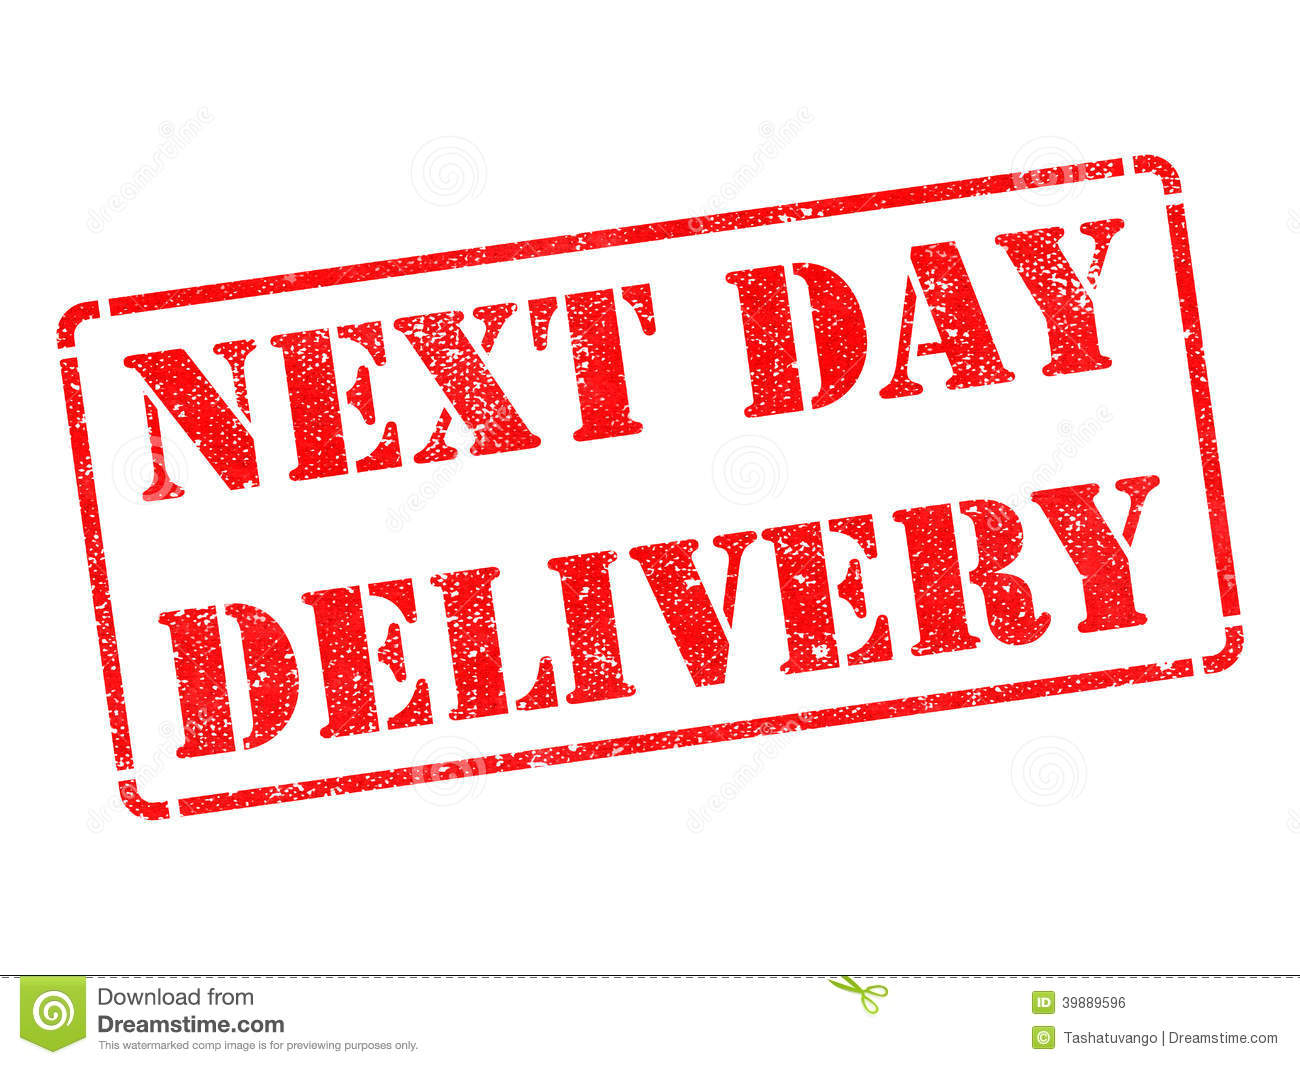 Shop Next Day Delivery at Staples. Choose from our wide selection of Next Day Delivery and get fast & free shipping on select orders.